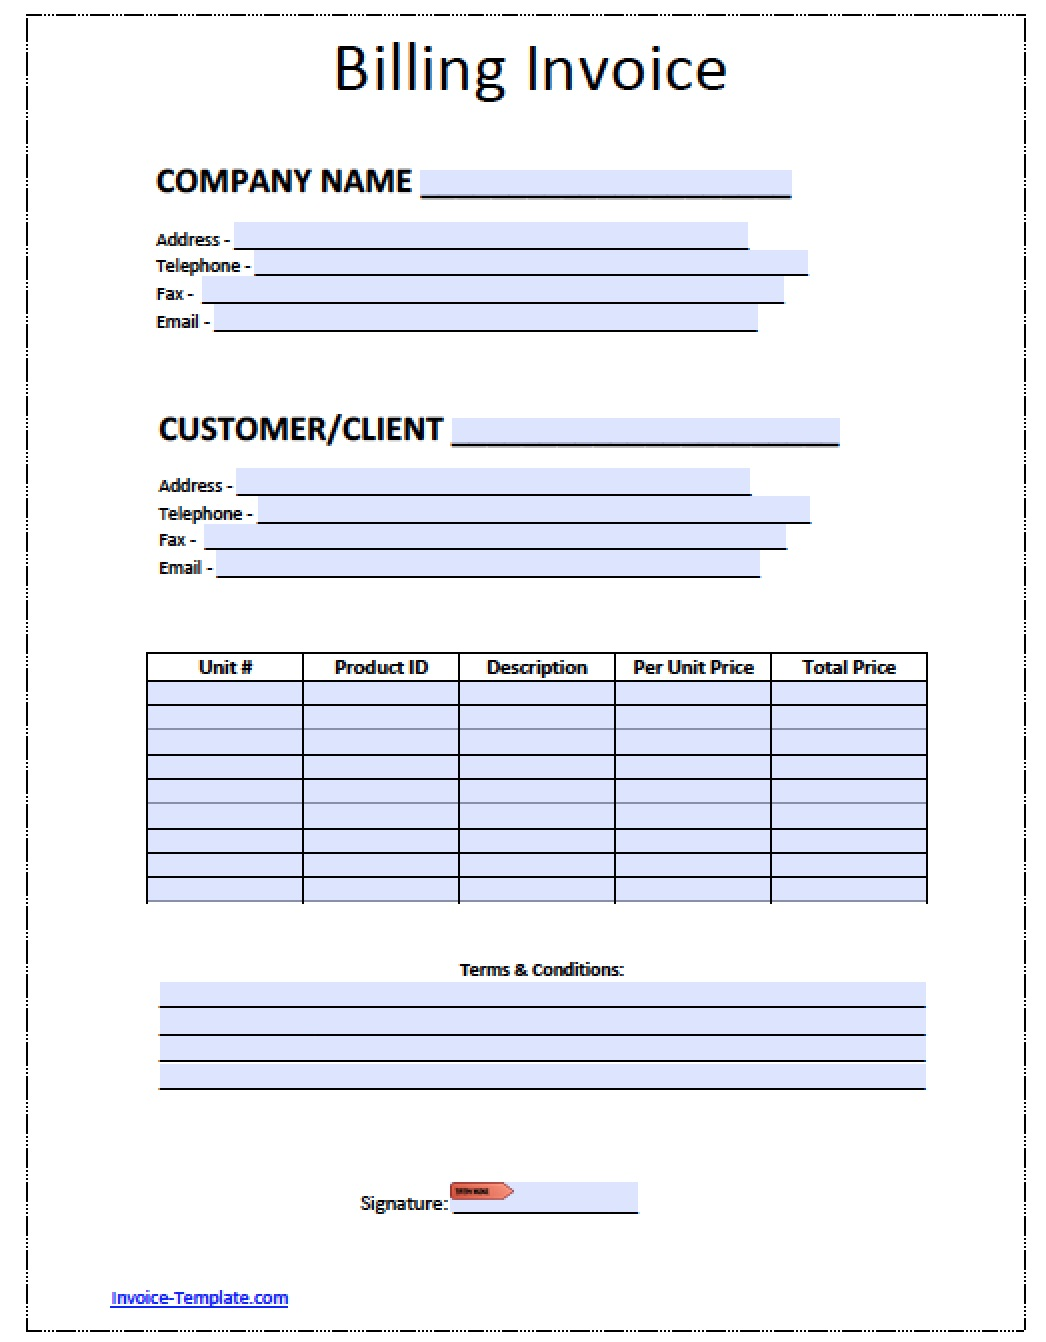 Centralasianshepherdus  Seductive Billing Invoice Invoices Faq U Cloudflare Support Billing  With Lovable Free Billing Invoice Template  Excel  Pdf  Word Doc  Billing With Breathtaking Receipt Confirmation Template Also Receipt Download In Addition Wireless Thermal Receipt Printer And Landlord Rent Receipt Template As Well As Cash Receipt Example Additionally Margarita Receipt From Happytomco With Centralasianshepherdus  Lovable Billing Invoice Invoices Faq U Cloudflare Support Billing  With Breathtaking Free Billing Invoice Template  Excel  Pdf  Word Doc  Billing And Seductive Receipt Confirmation Template Also Receipt Download In Addition Wireless Thermal Receipt Printer From Happytomco